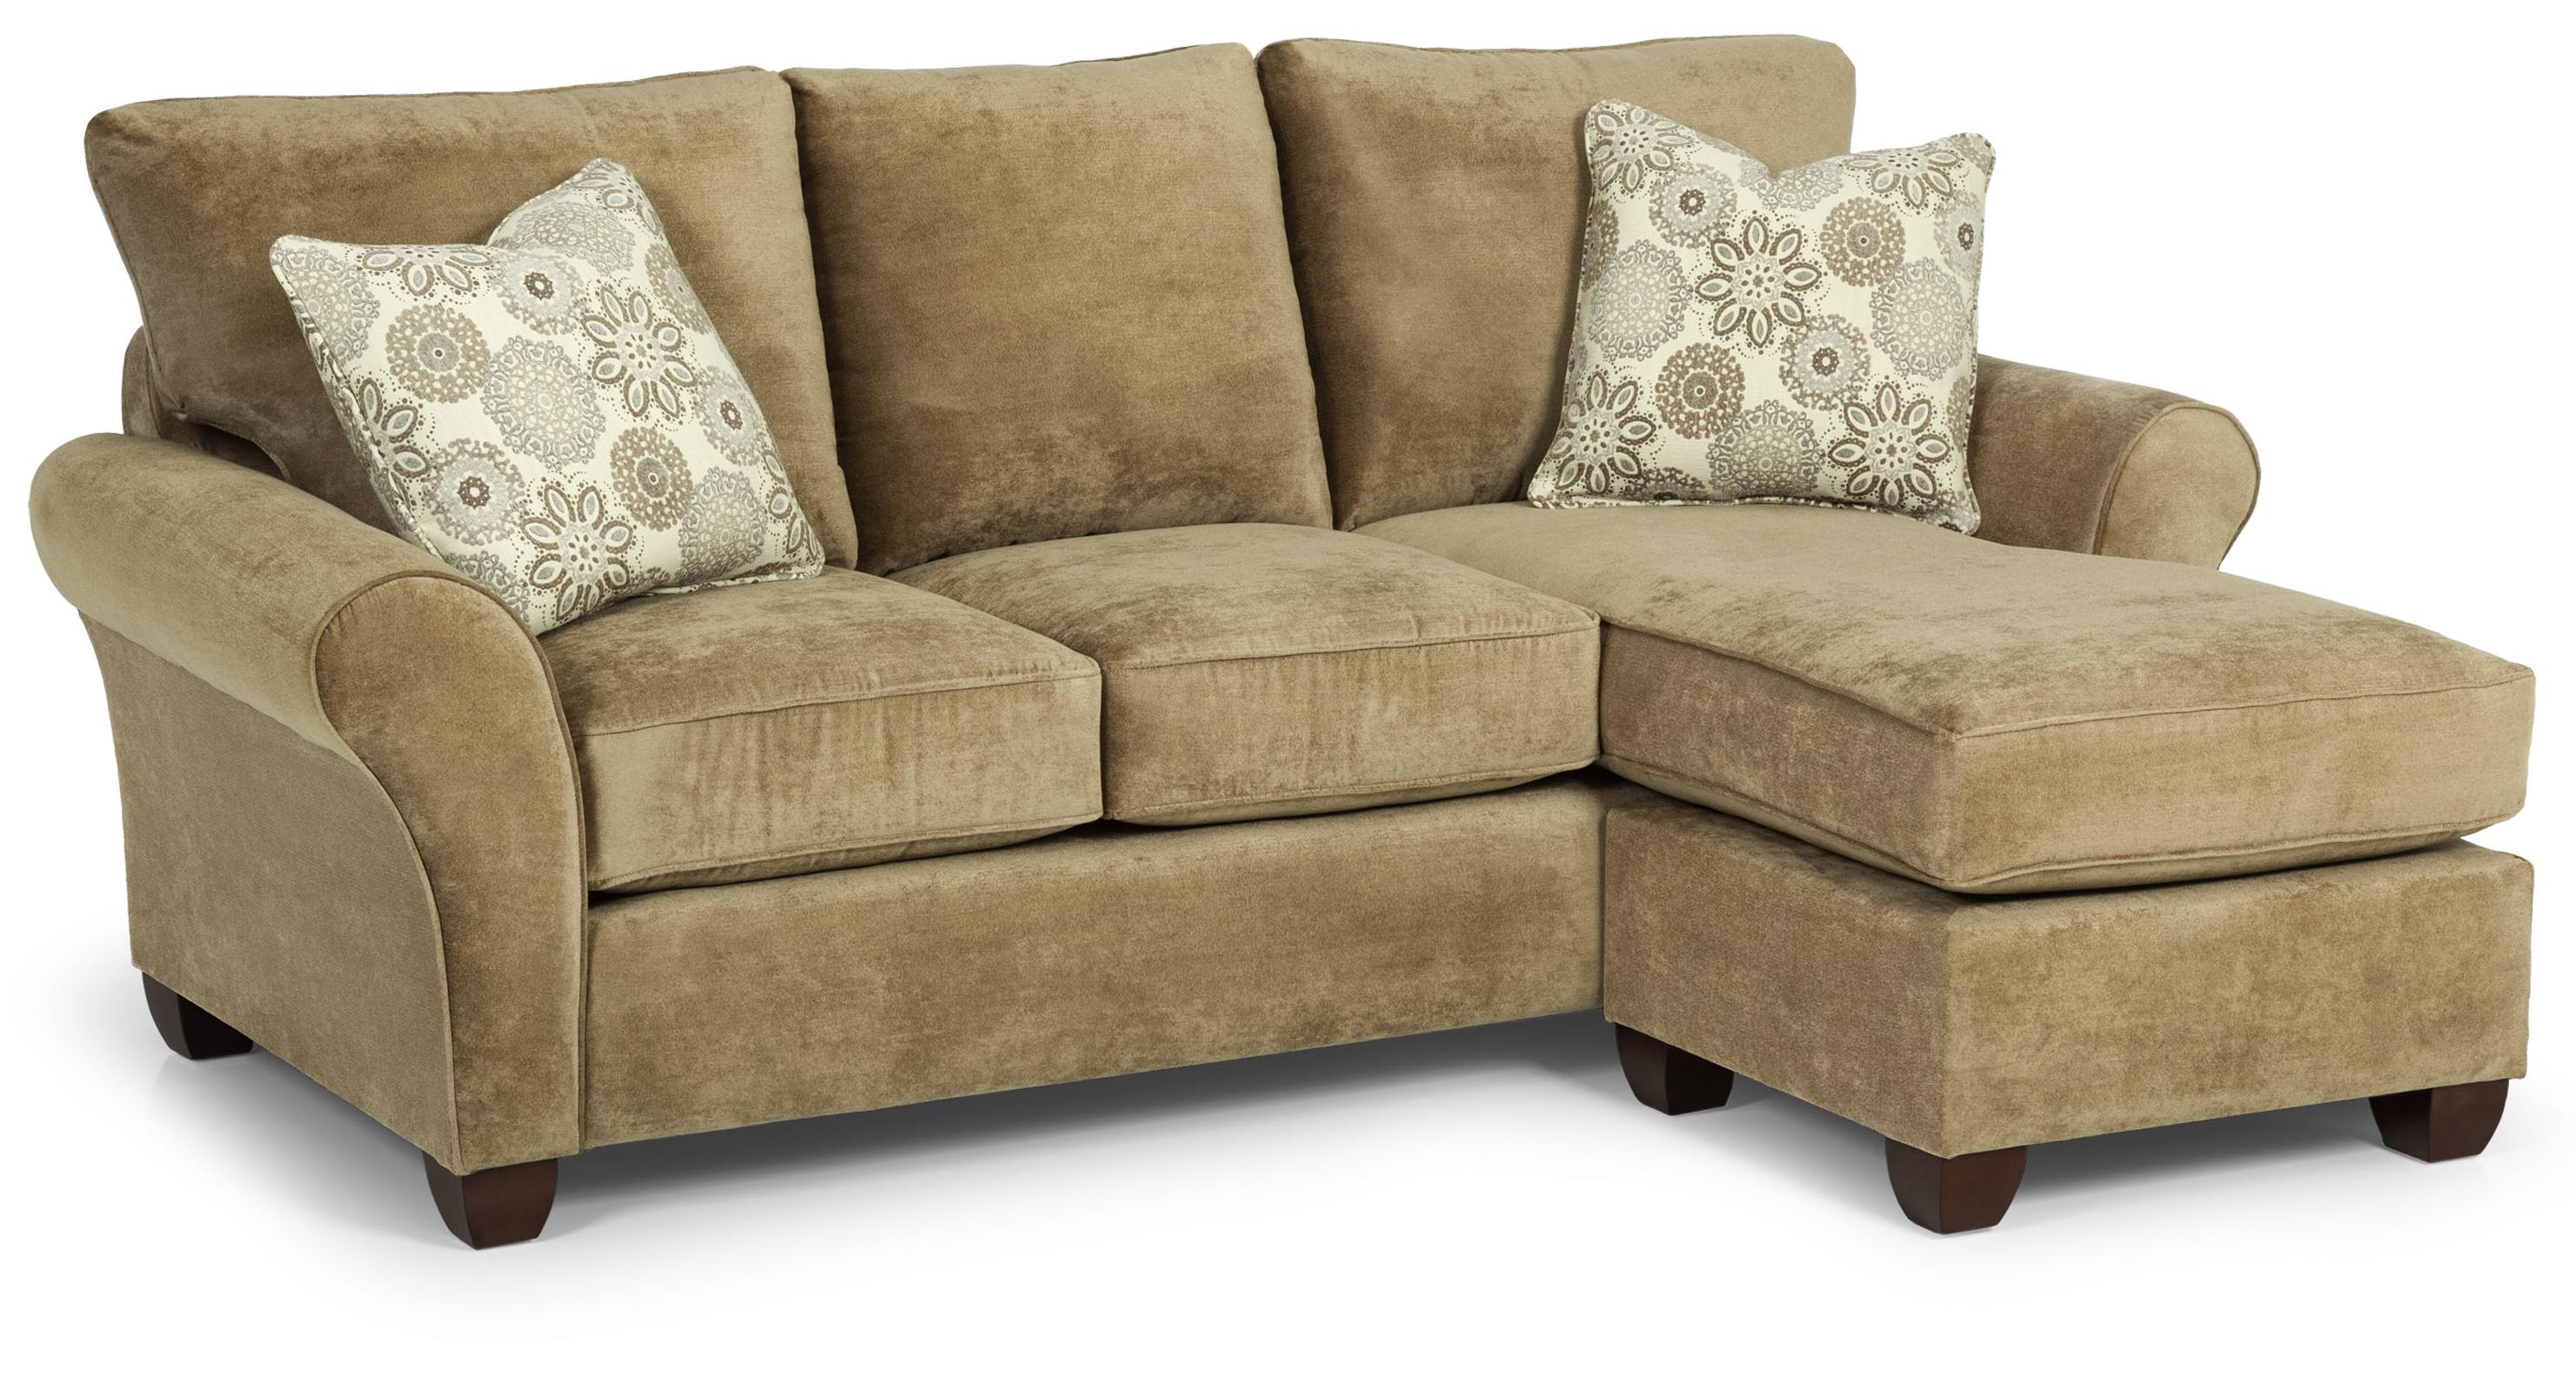 Stanton 320 Transitional Chaise Sofa - Item Number: 32033